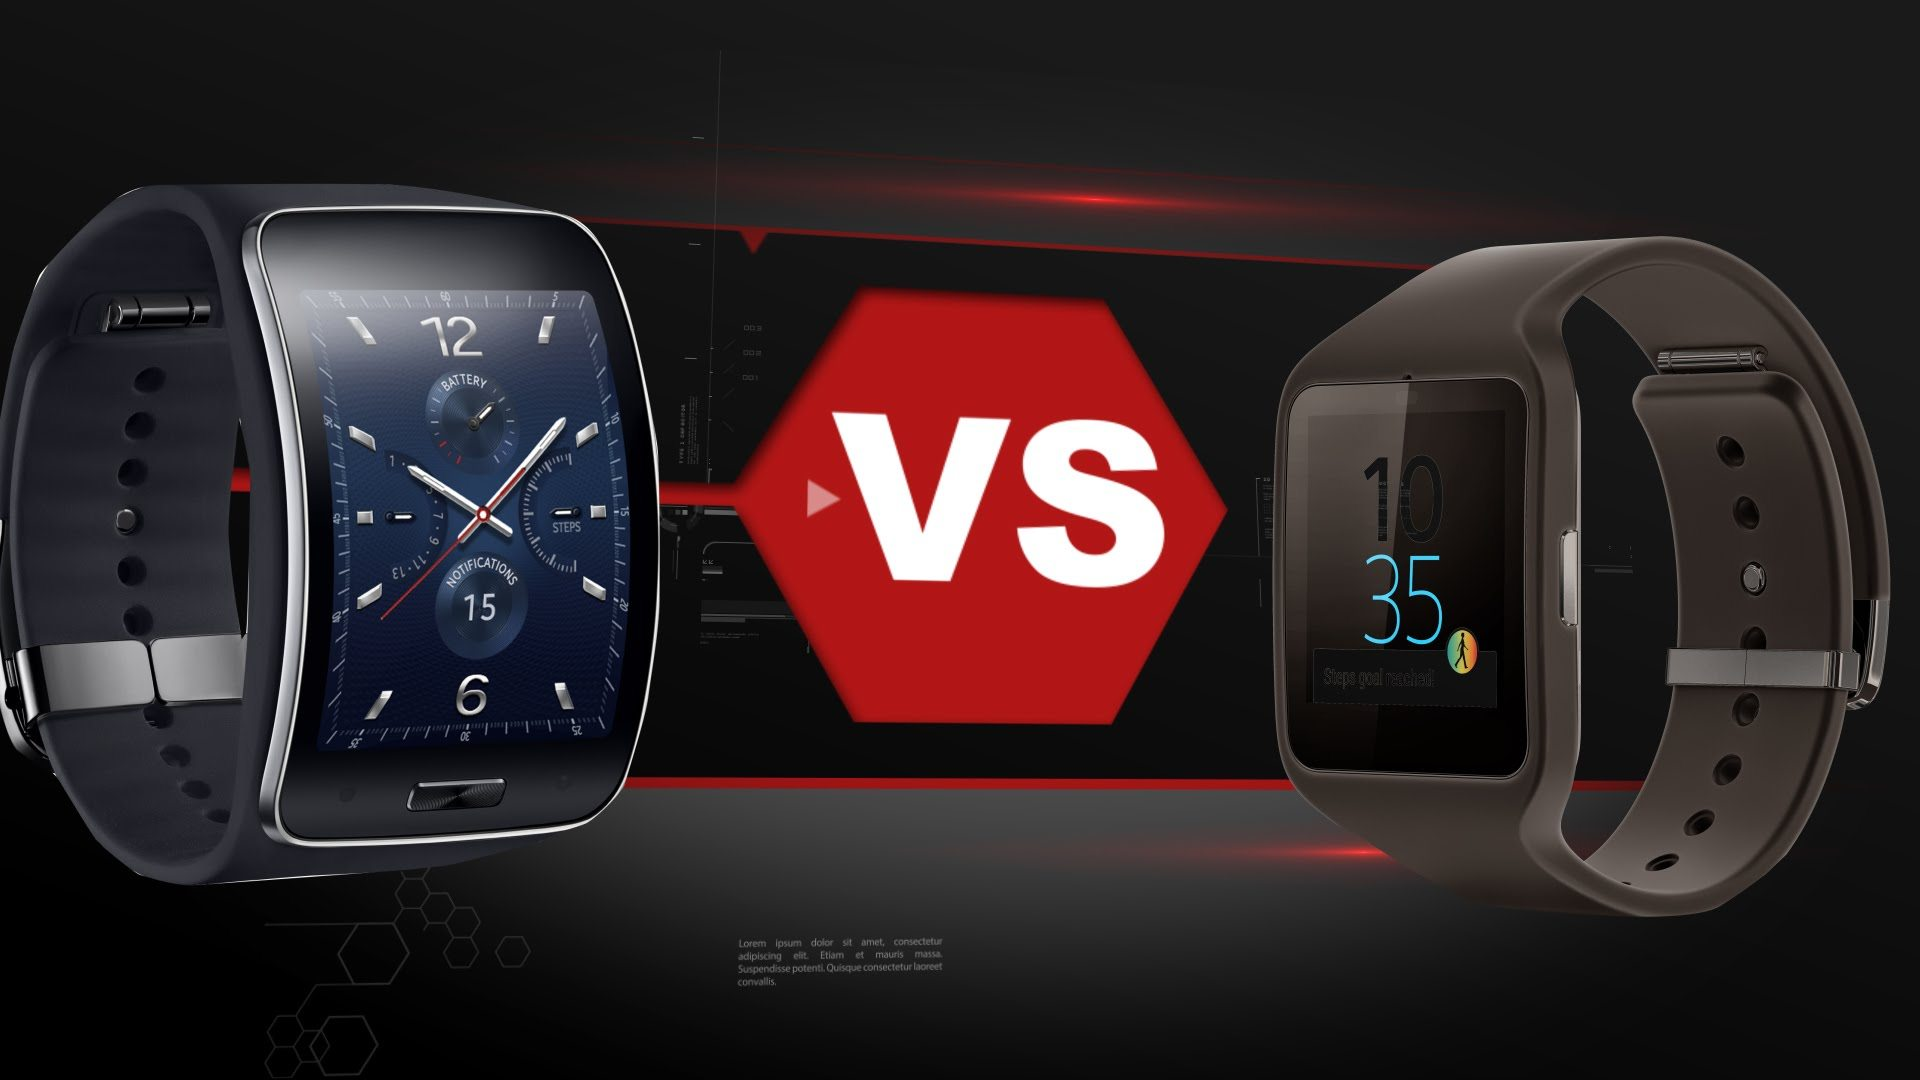 Sony Smartwatch 3 vs Samsung Gear S – The Battle of Two of the Best Wearable Devices